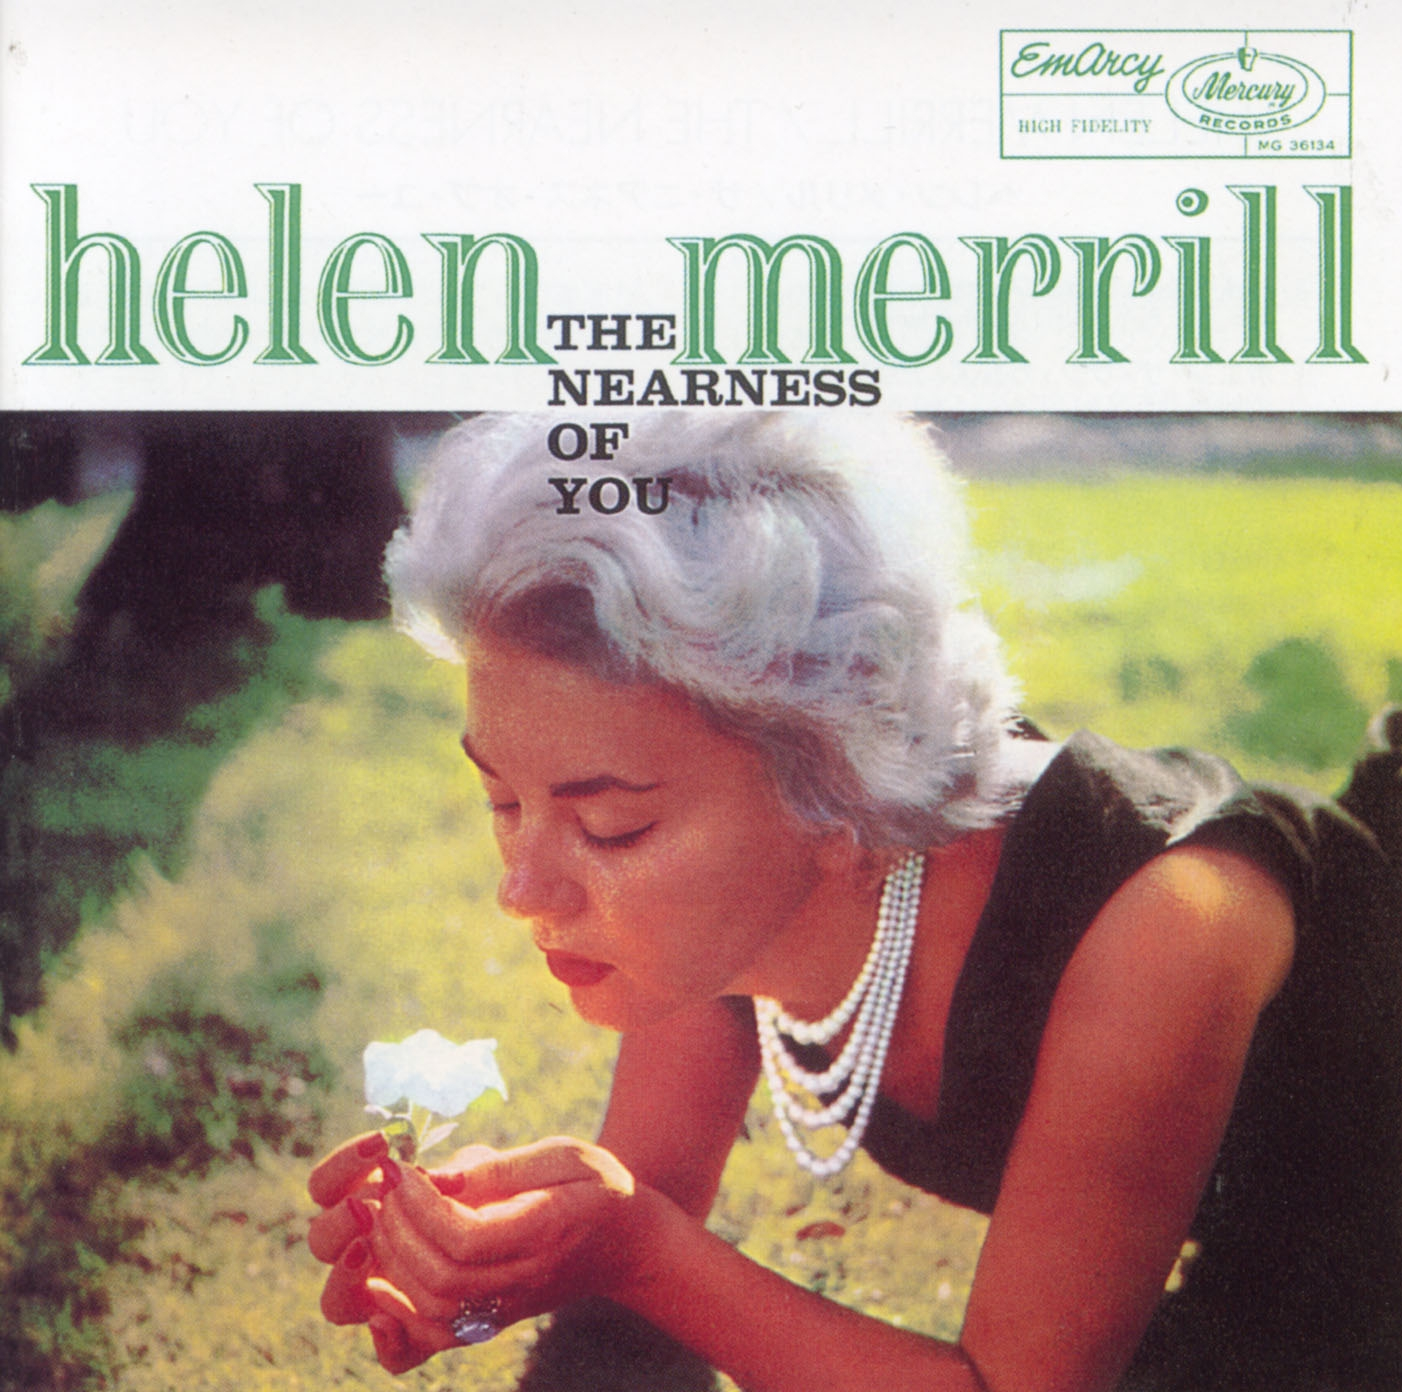 Helen Merrill, The Nearness of You